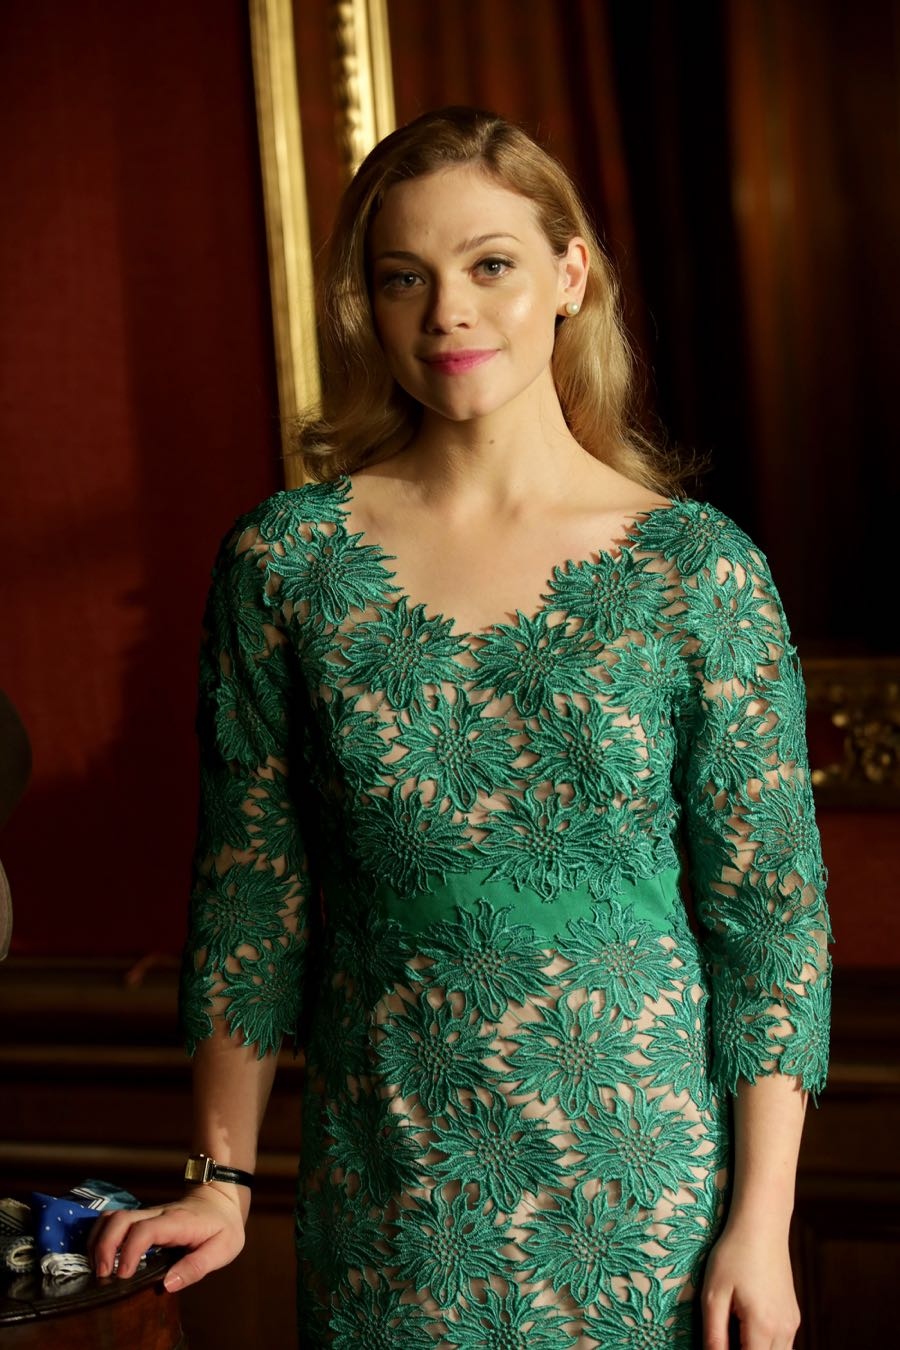 """GUILT - """"Exit Wounds"""" - Grace spirals after reading hateful remarks about herself on the internet, on an all-new episode of """"Guilt,"""" airing MONDAY, JUNE 27 (9:00 - 10:00 p.m. EDT), on Freeform. (Freeform/Angus Young) KATIE CLARKSON-HILL"""